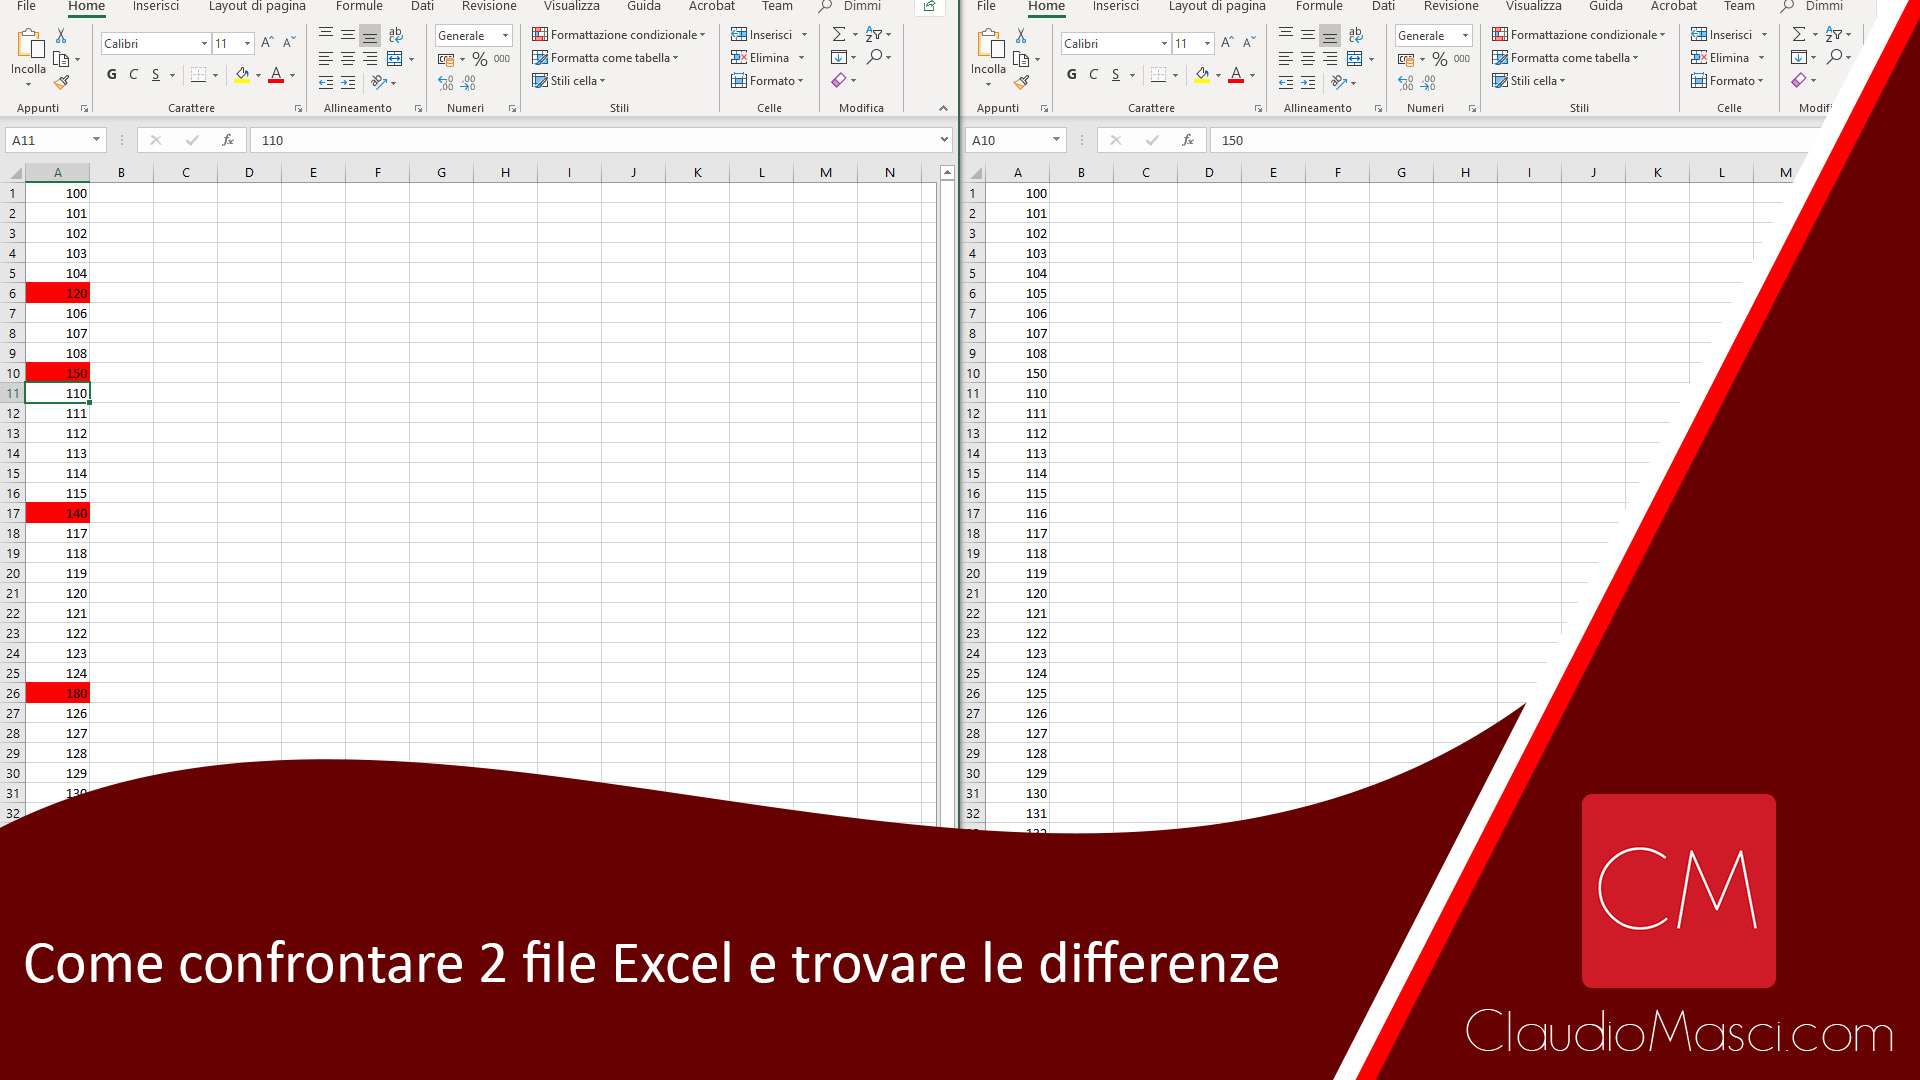 Come confrontare 2 file Excel e trovare le differenze